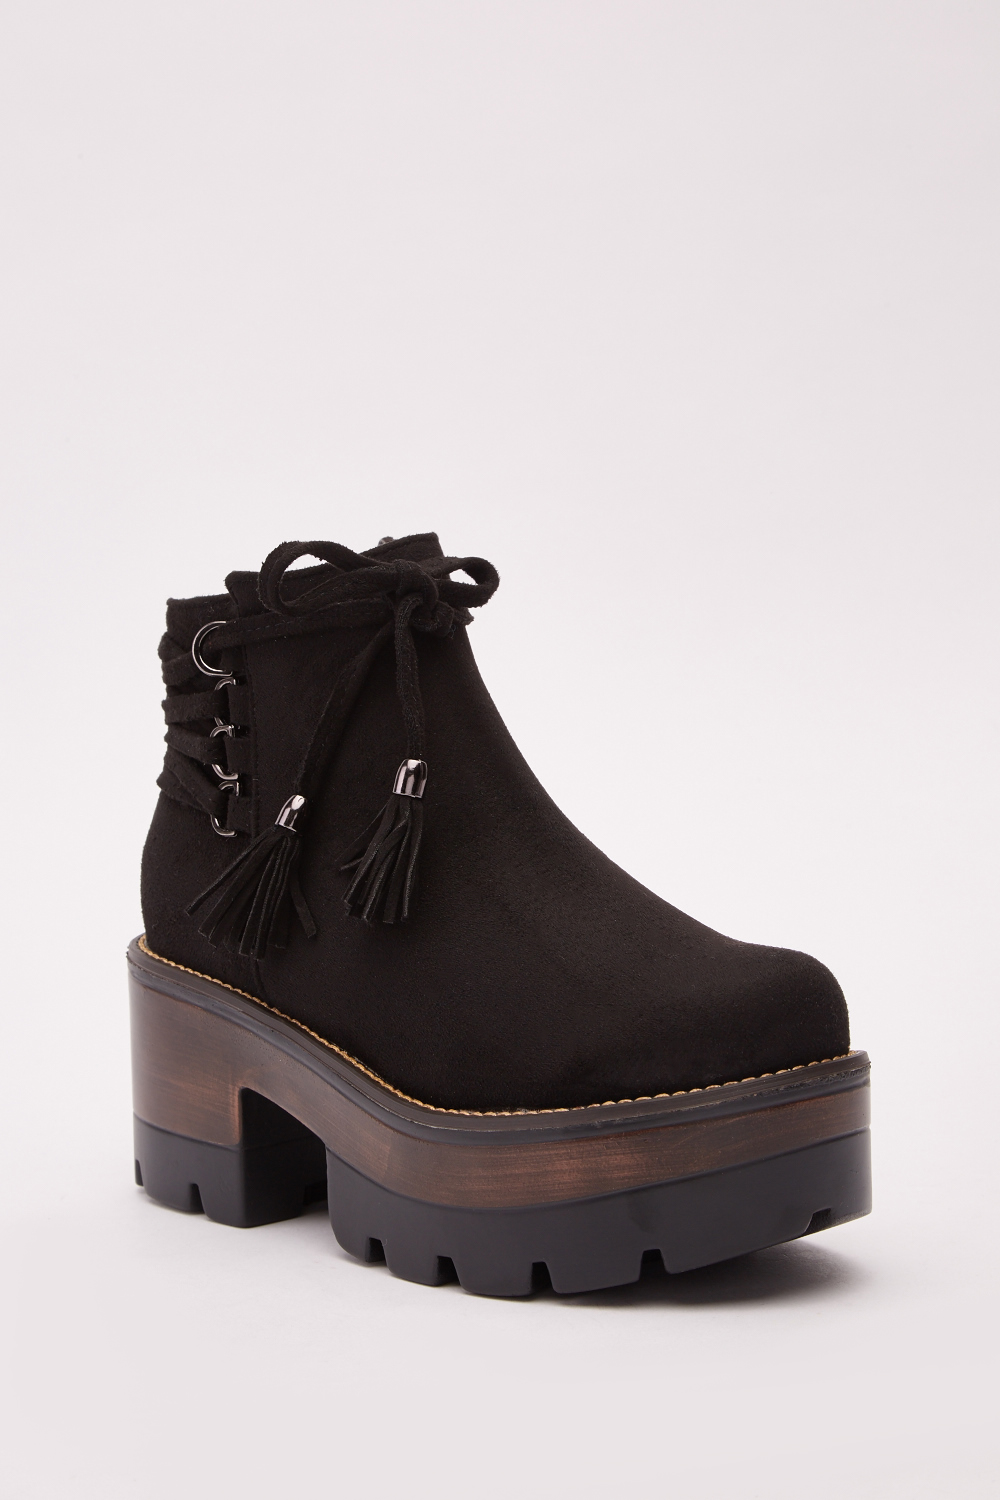 34ccd4465bb Suedette Chunky Block Heel Ankle Boots - Just £5